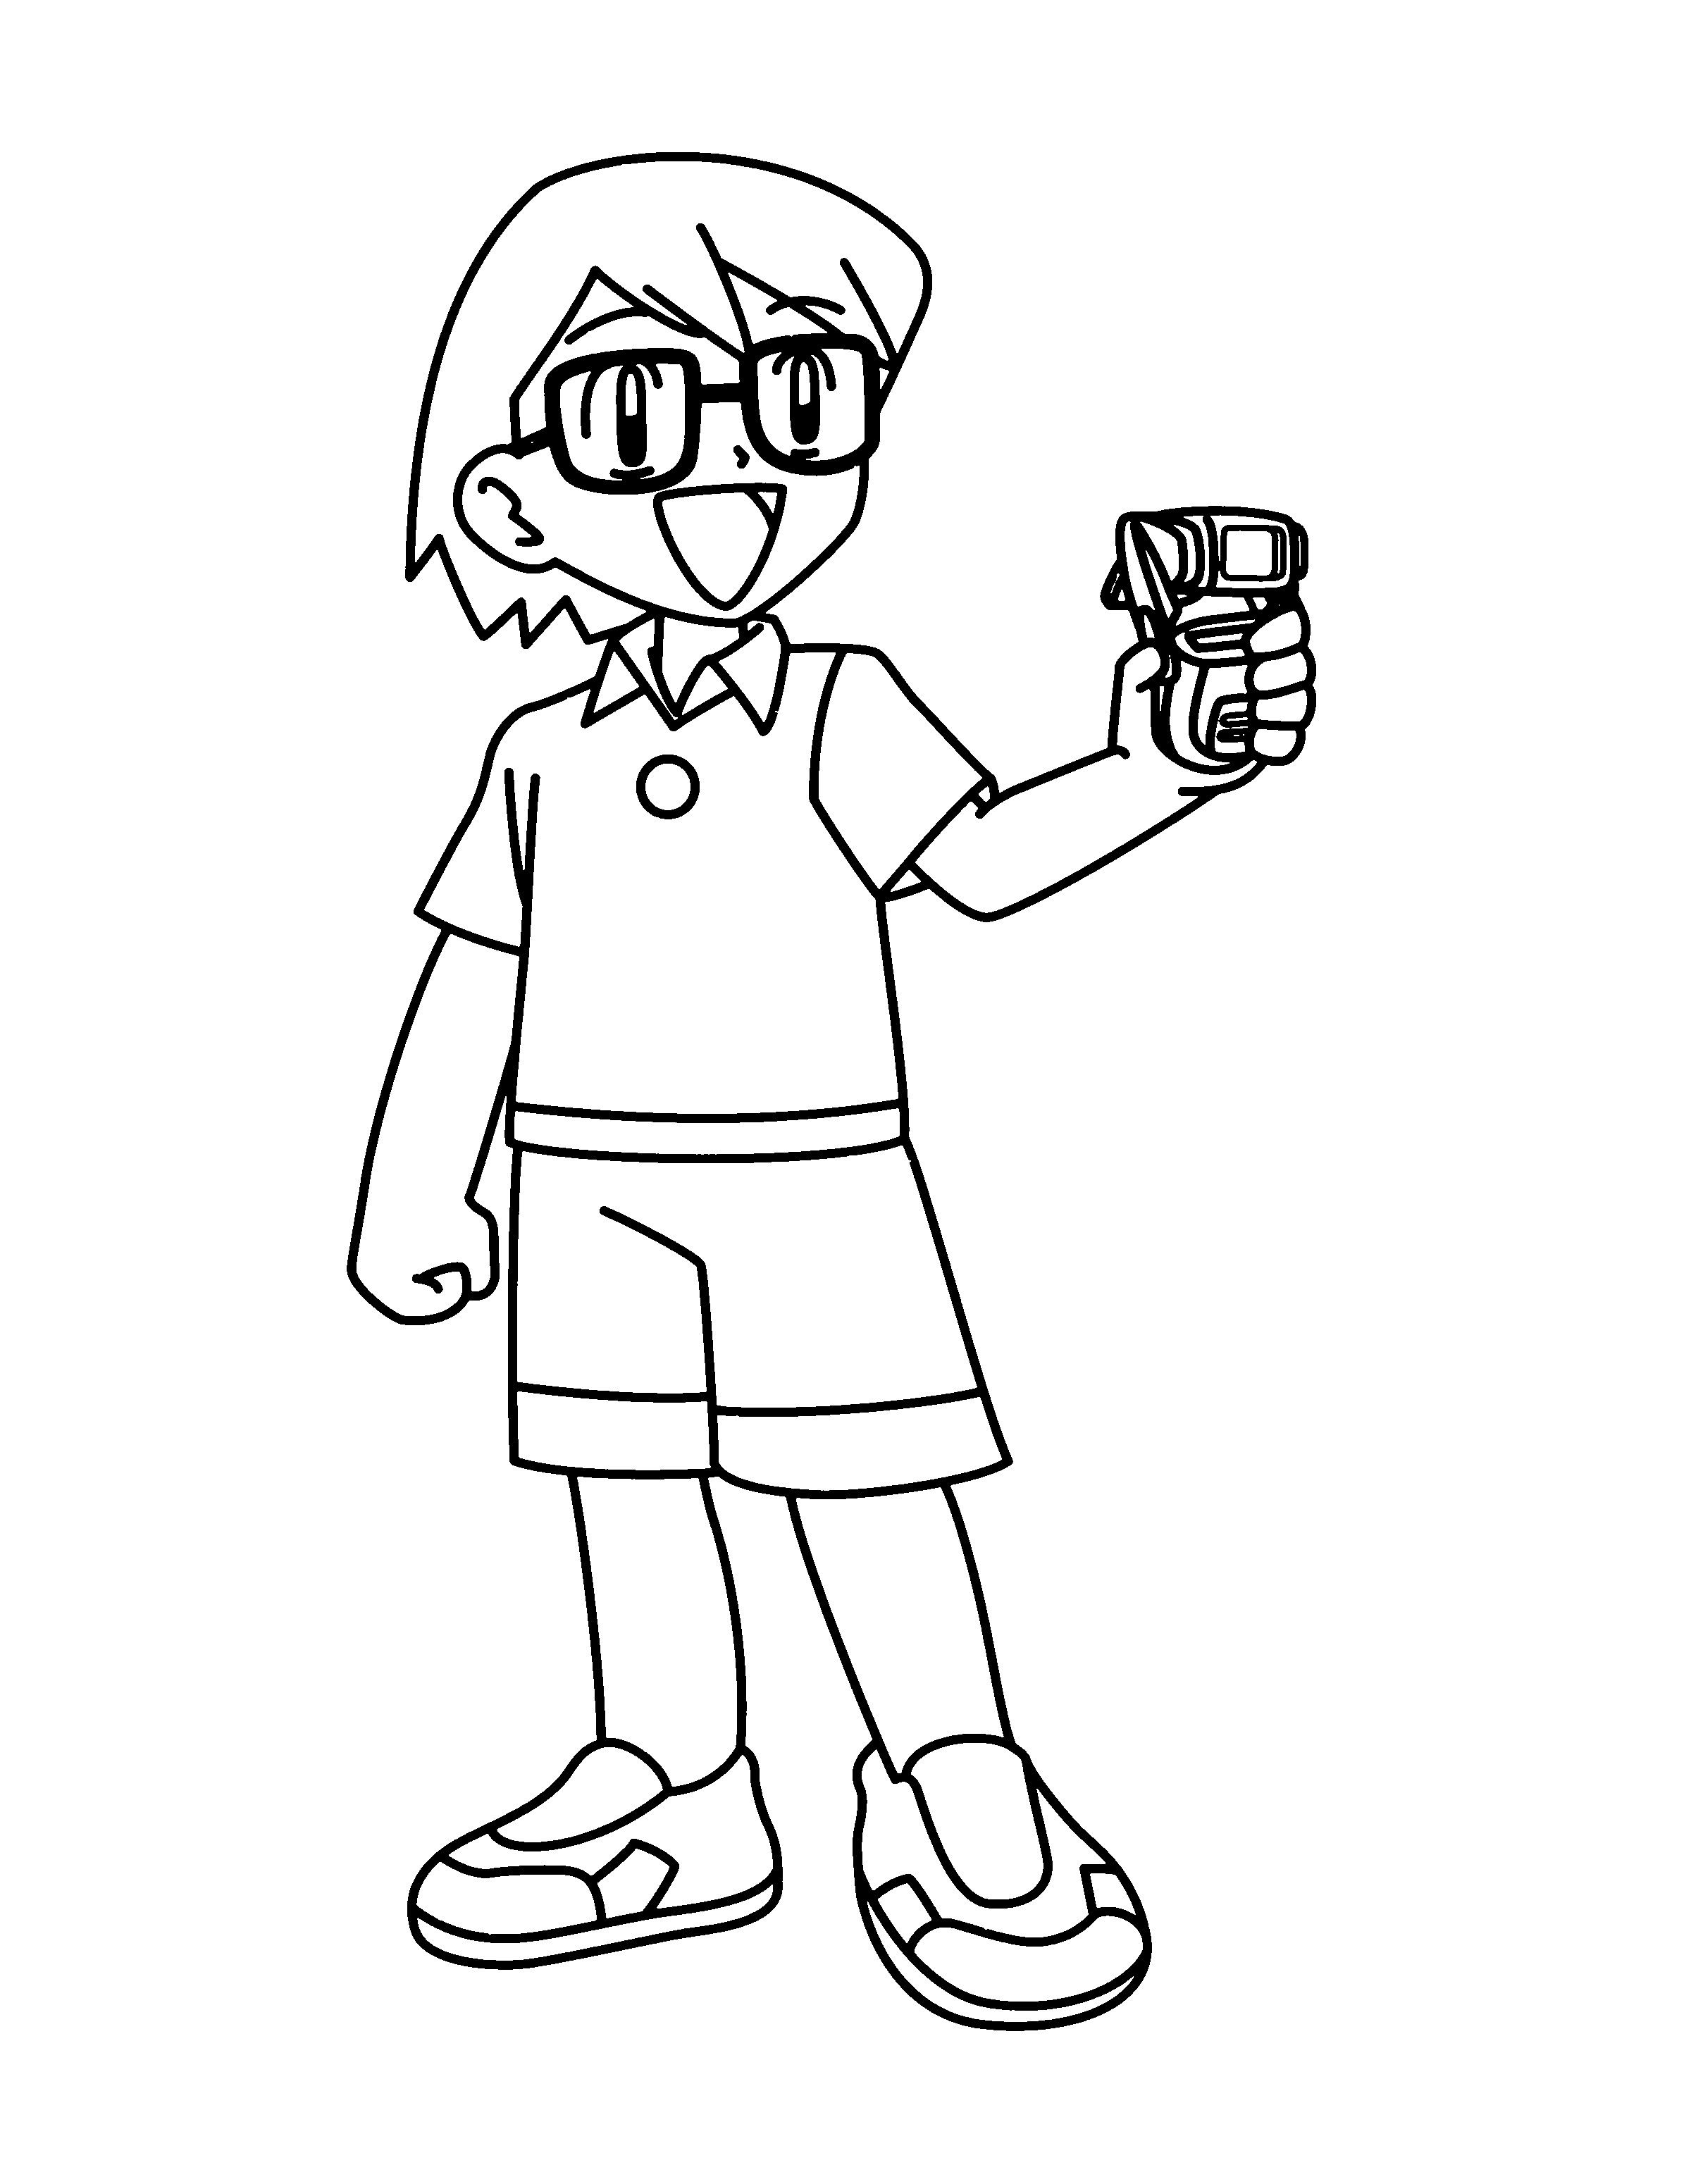 Pin On Coloring Pages Kids